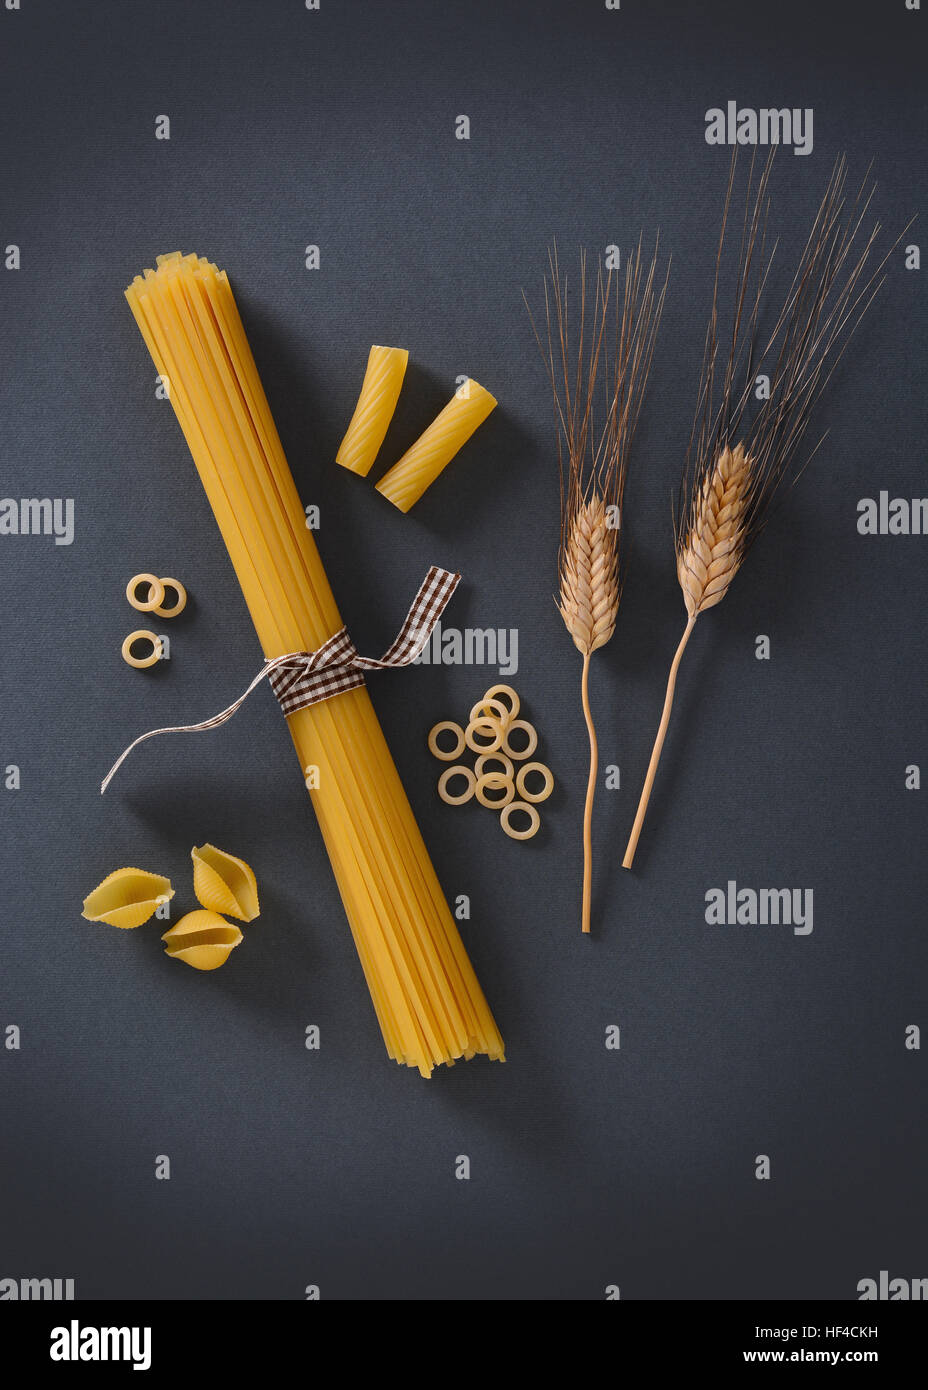 Italian pasta with ears of wheat near - Stock Image